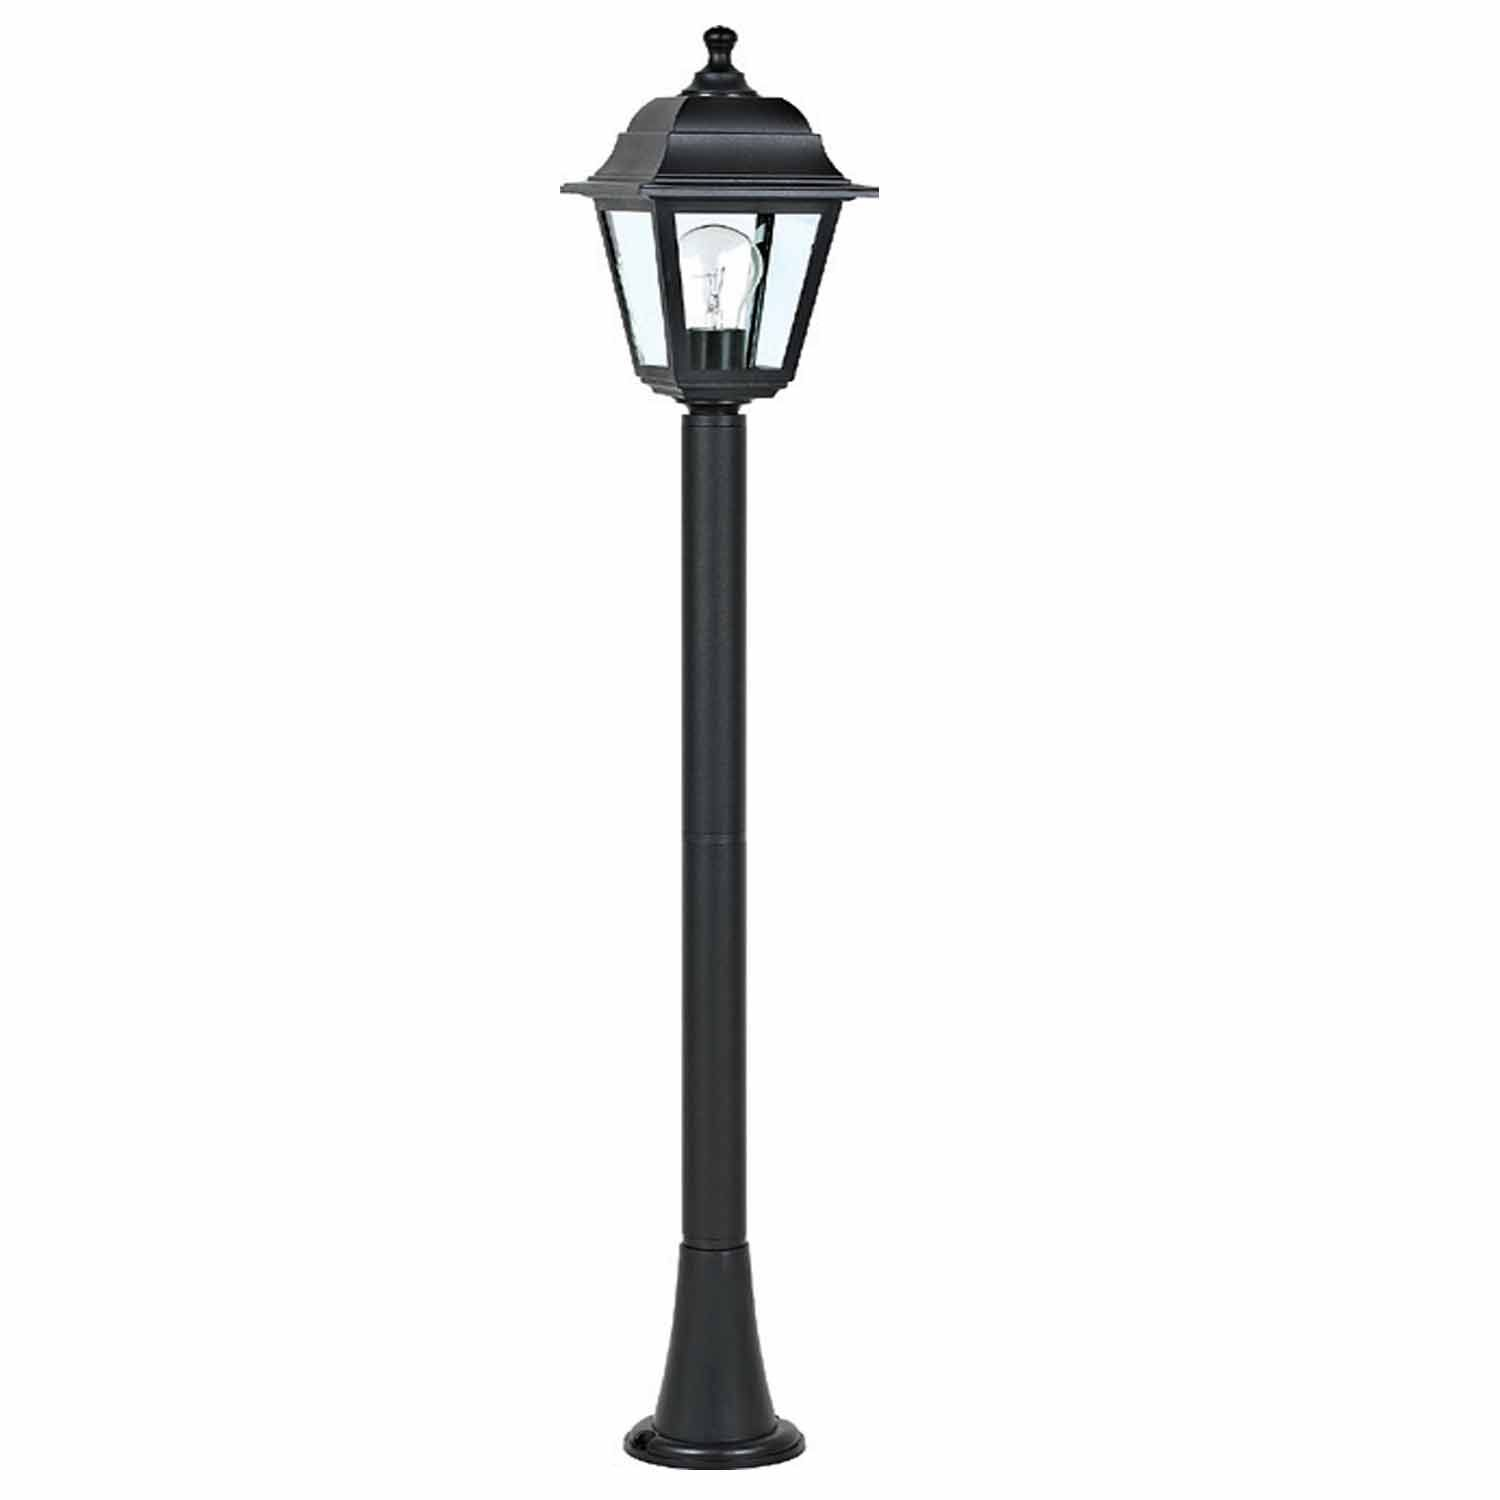 ACA DECOR Big Lantern Black IP44 - STERIXretro